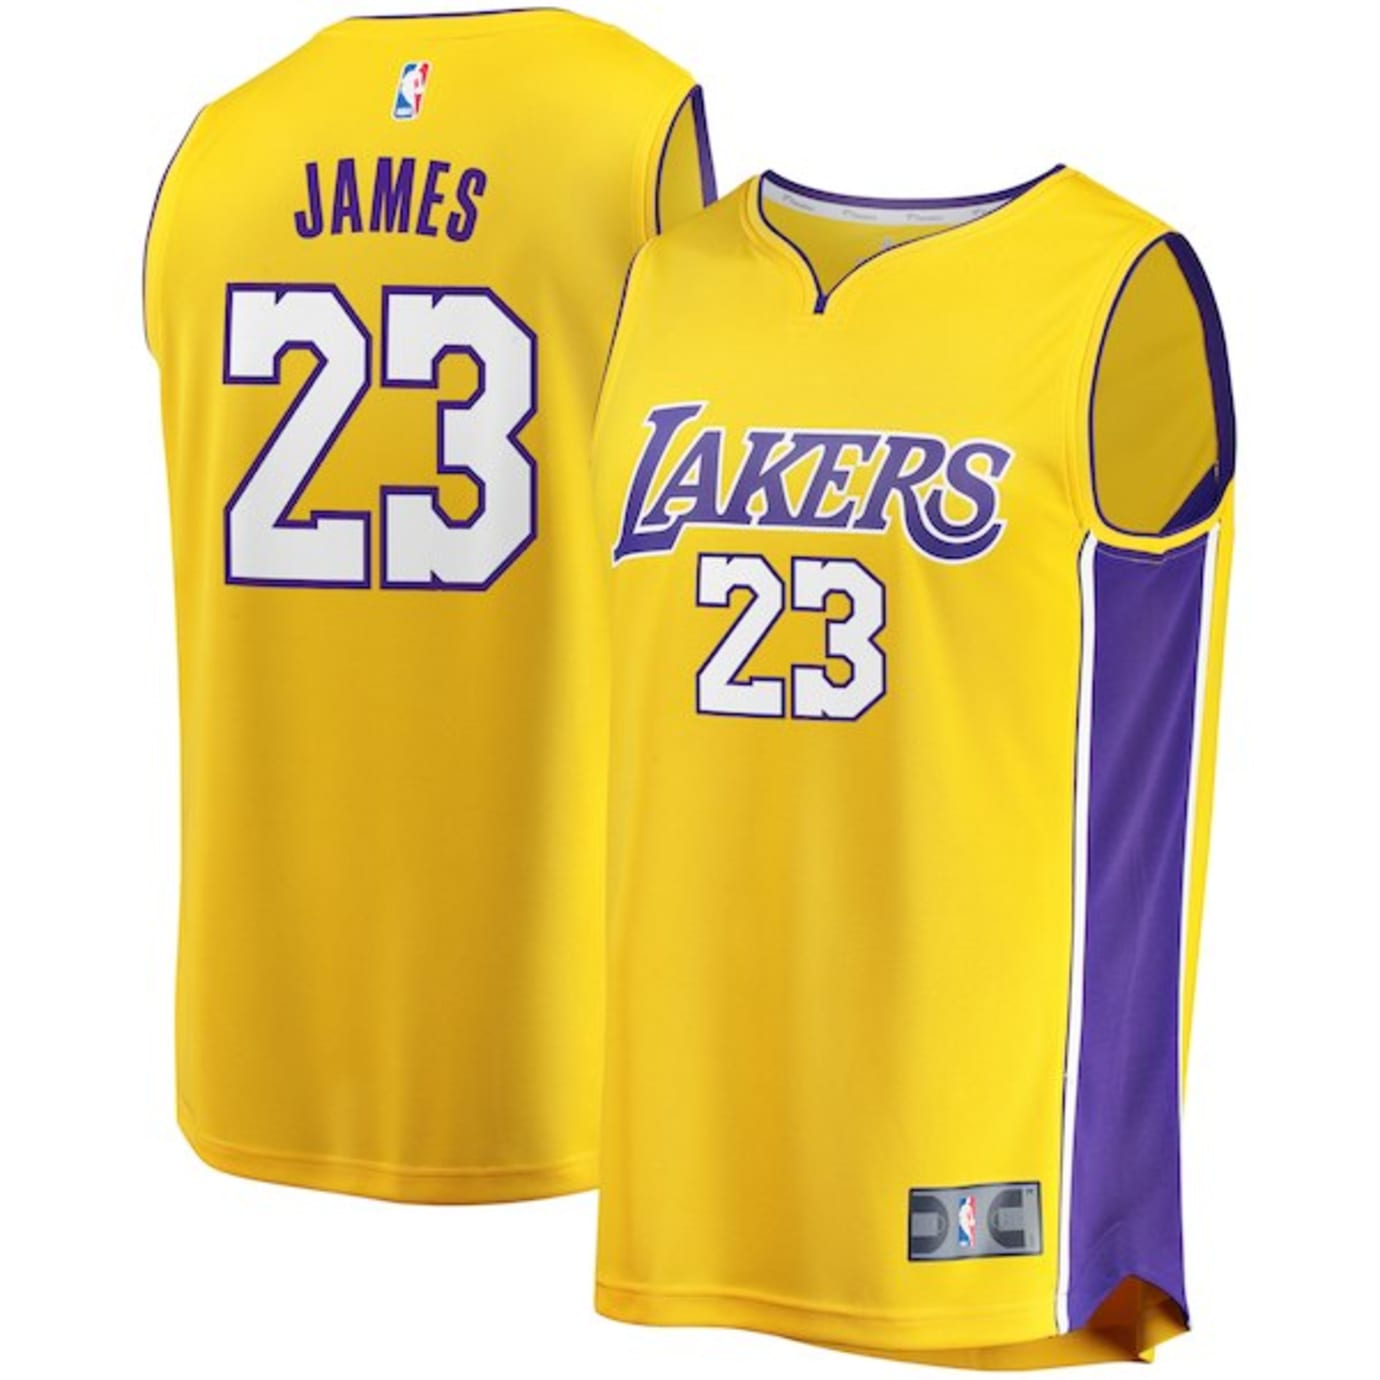 LeBron James Los Angeles Lakers Jerseys Selling Out | Sole Collector